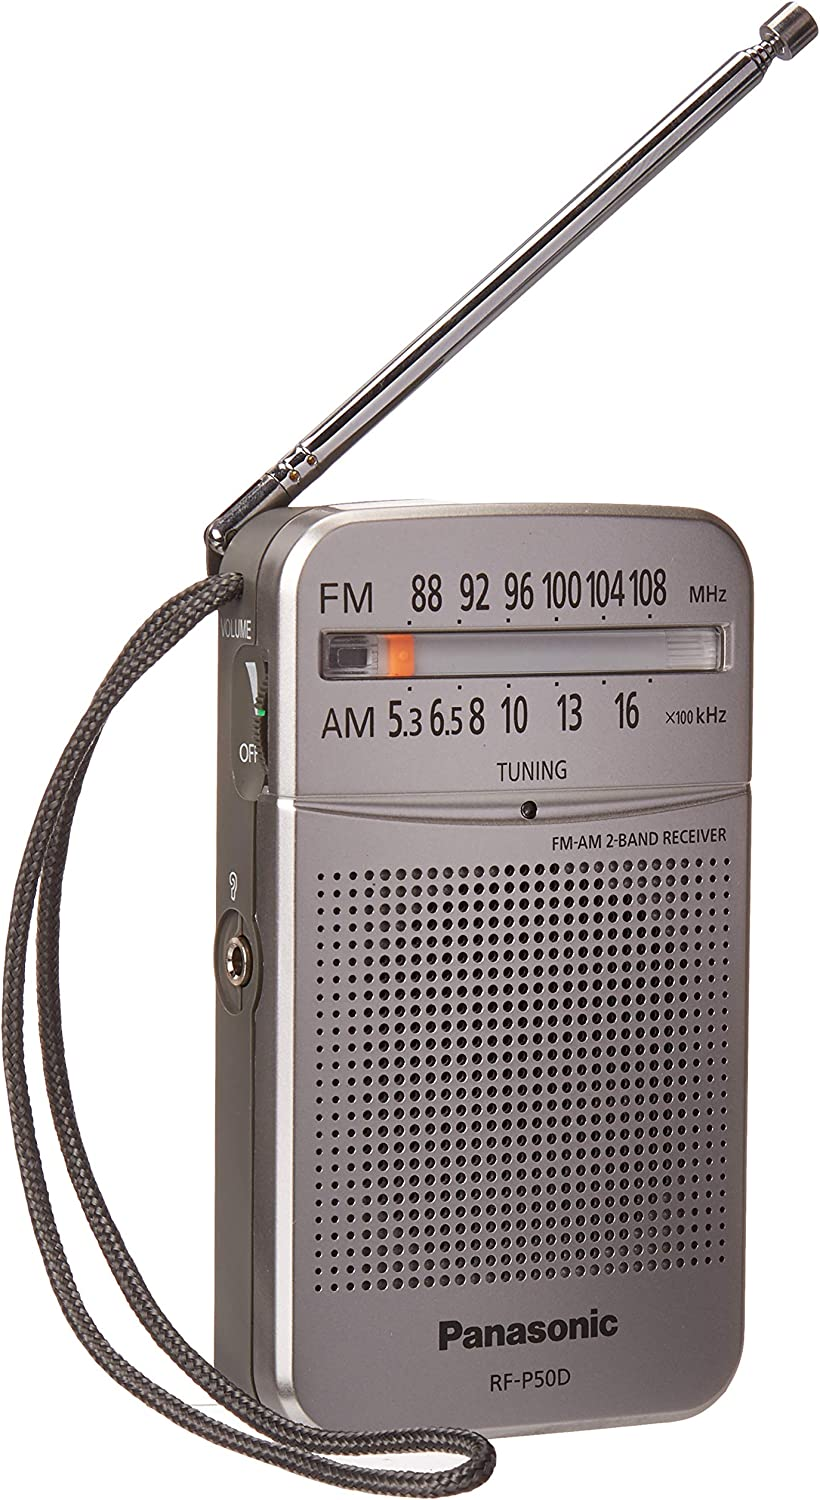 Panasonic rf-p50 AC/Battery Operated Am/FM Portable Radio (Discontinued by Manufacturer) (Silver/Small)